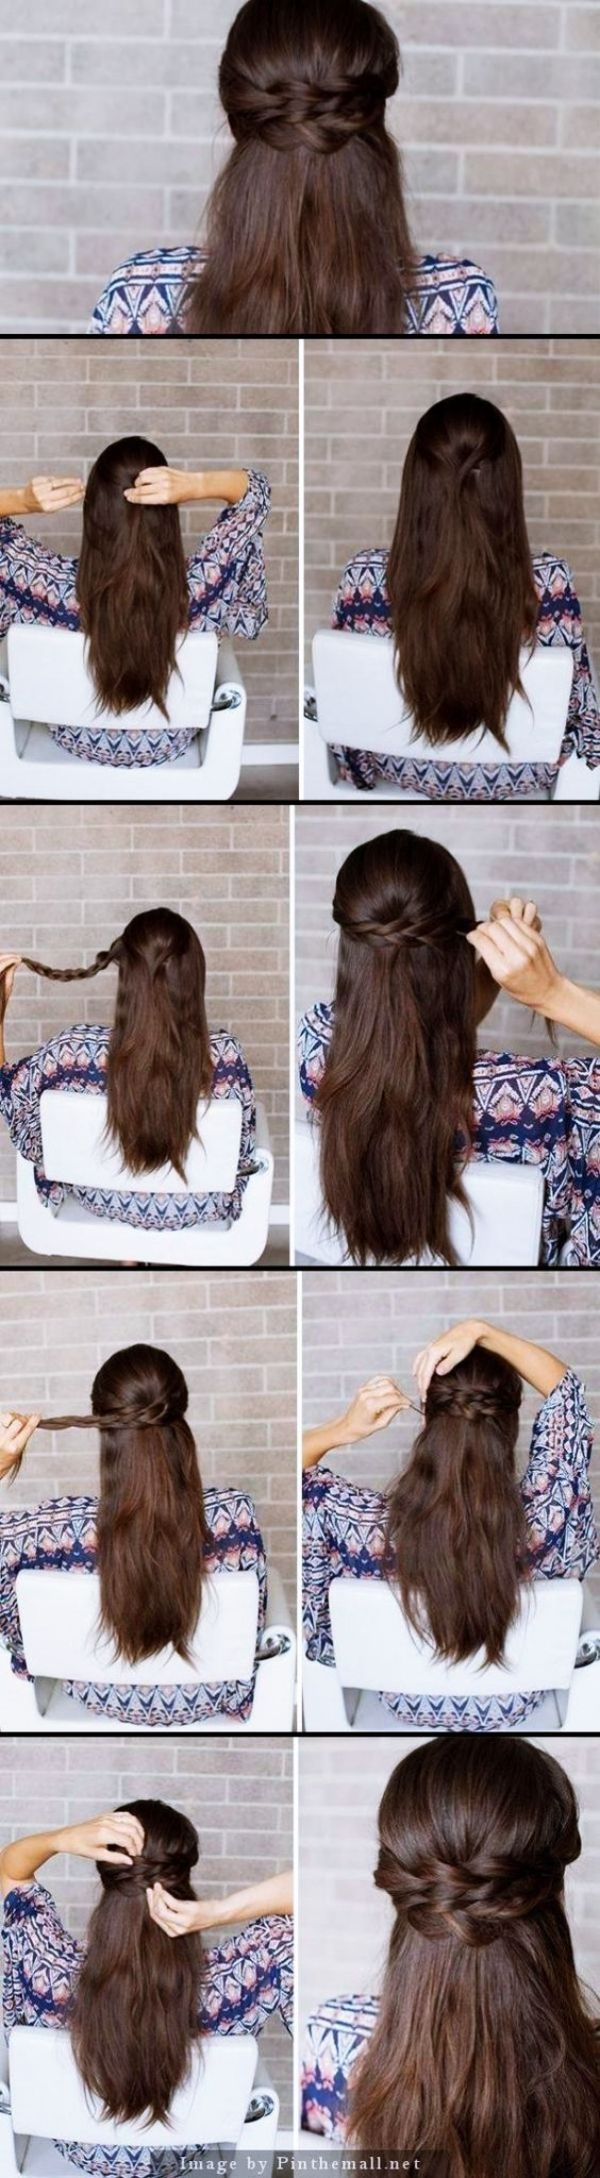 Quick Self Do Hairstyles For Working Moms Braids For Long Hair Long Hair Styles Down Hairstyles For Long Hair